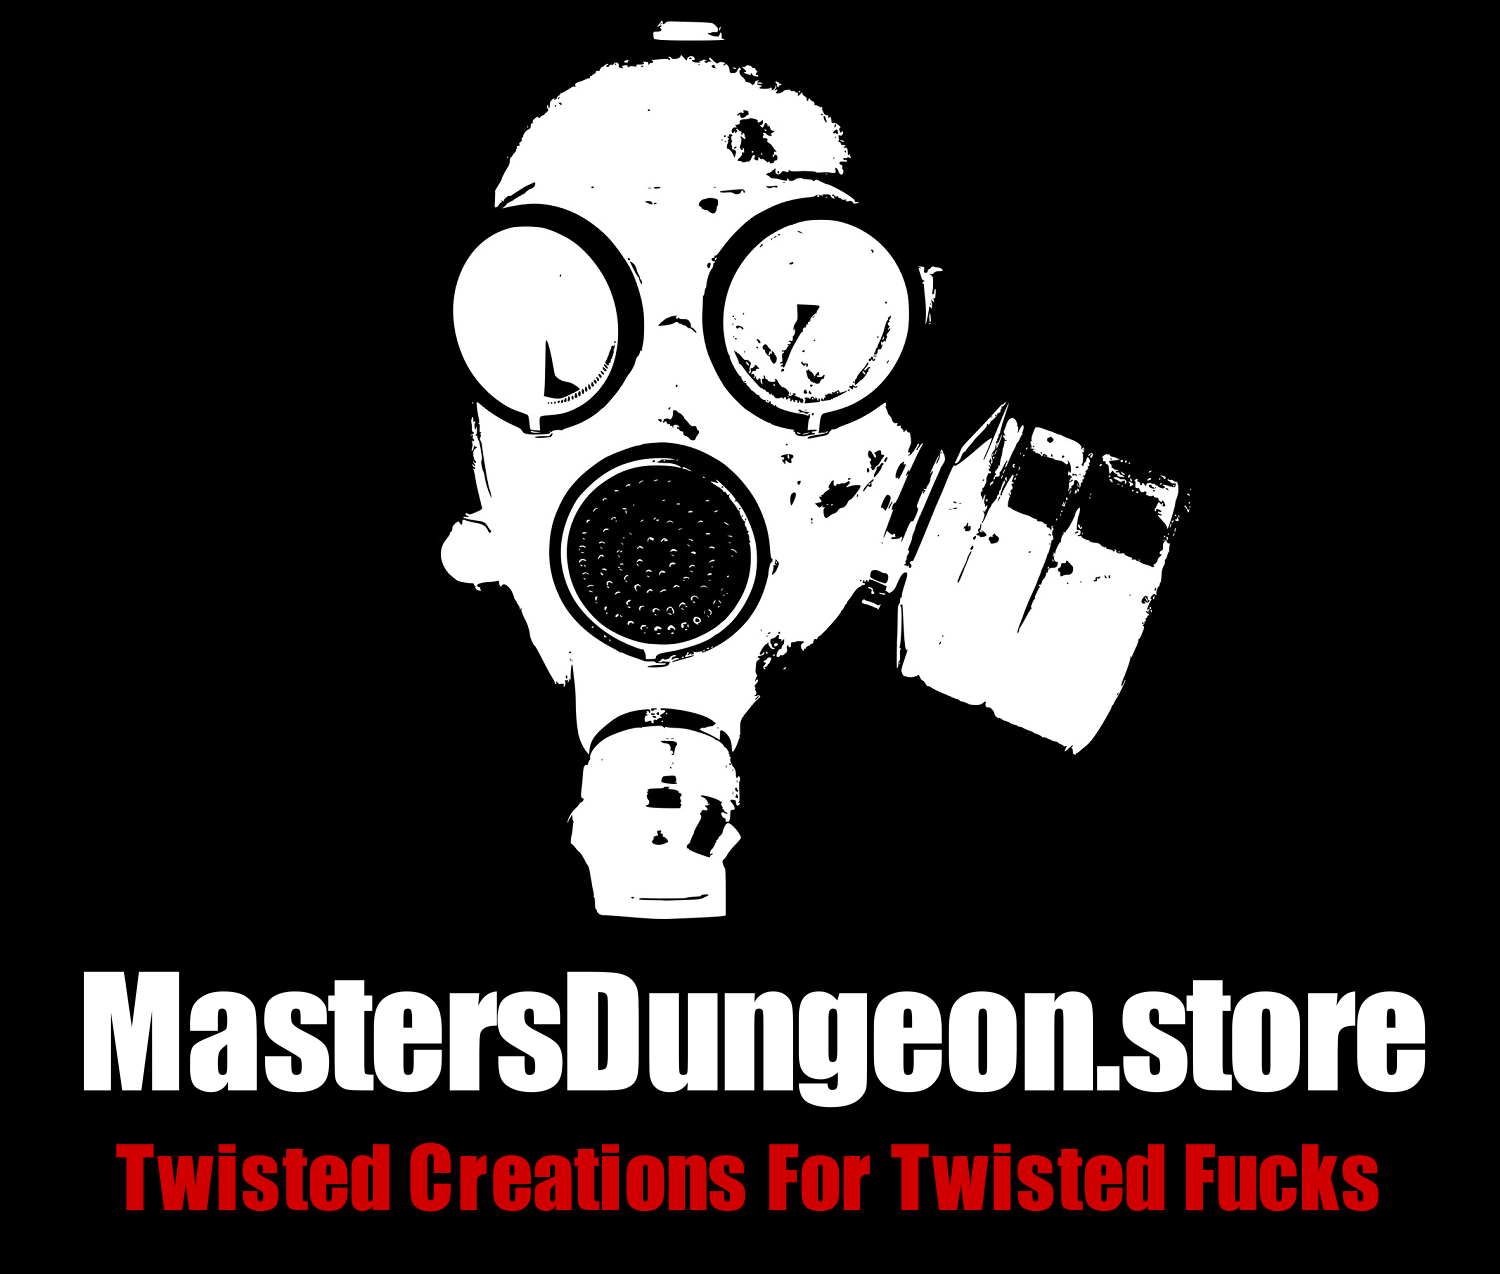 THE MASTER'S DUNGEON STORE